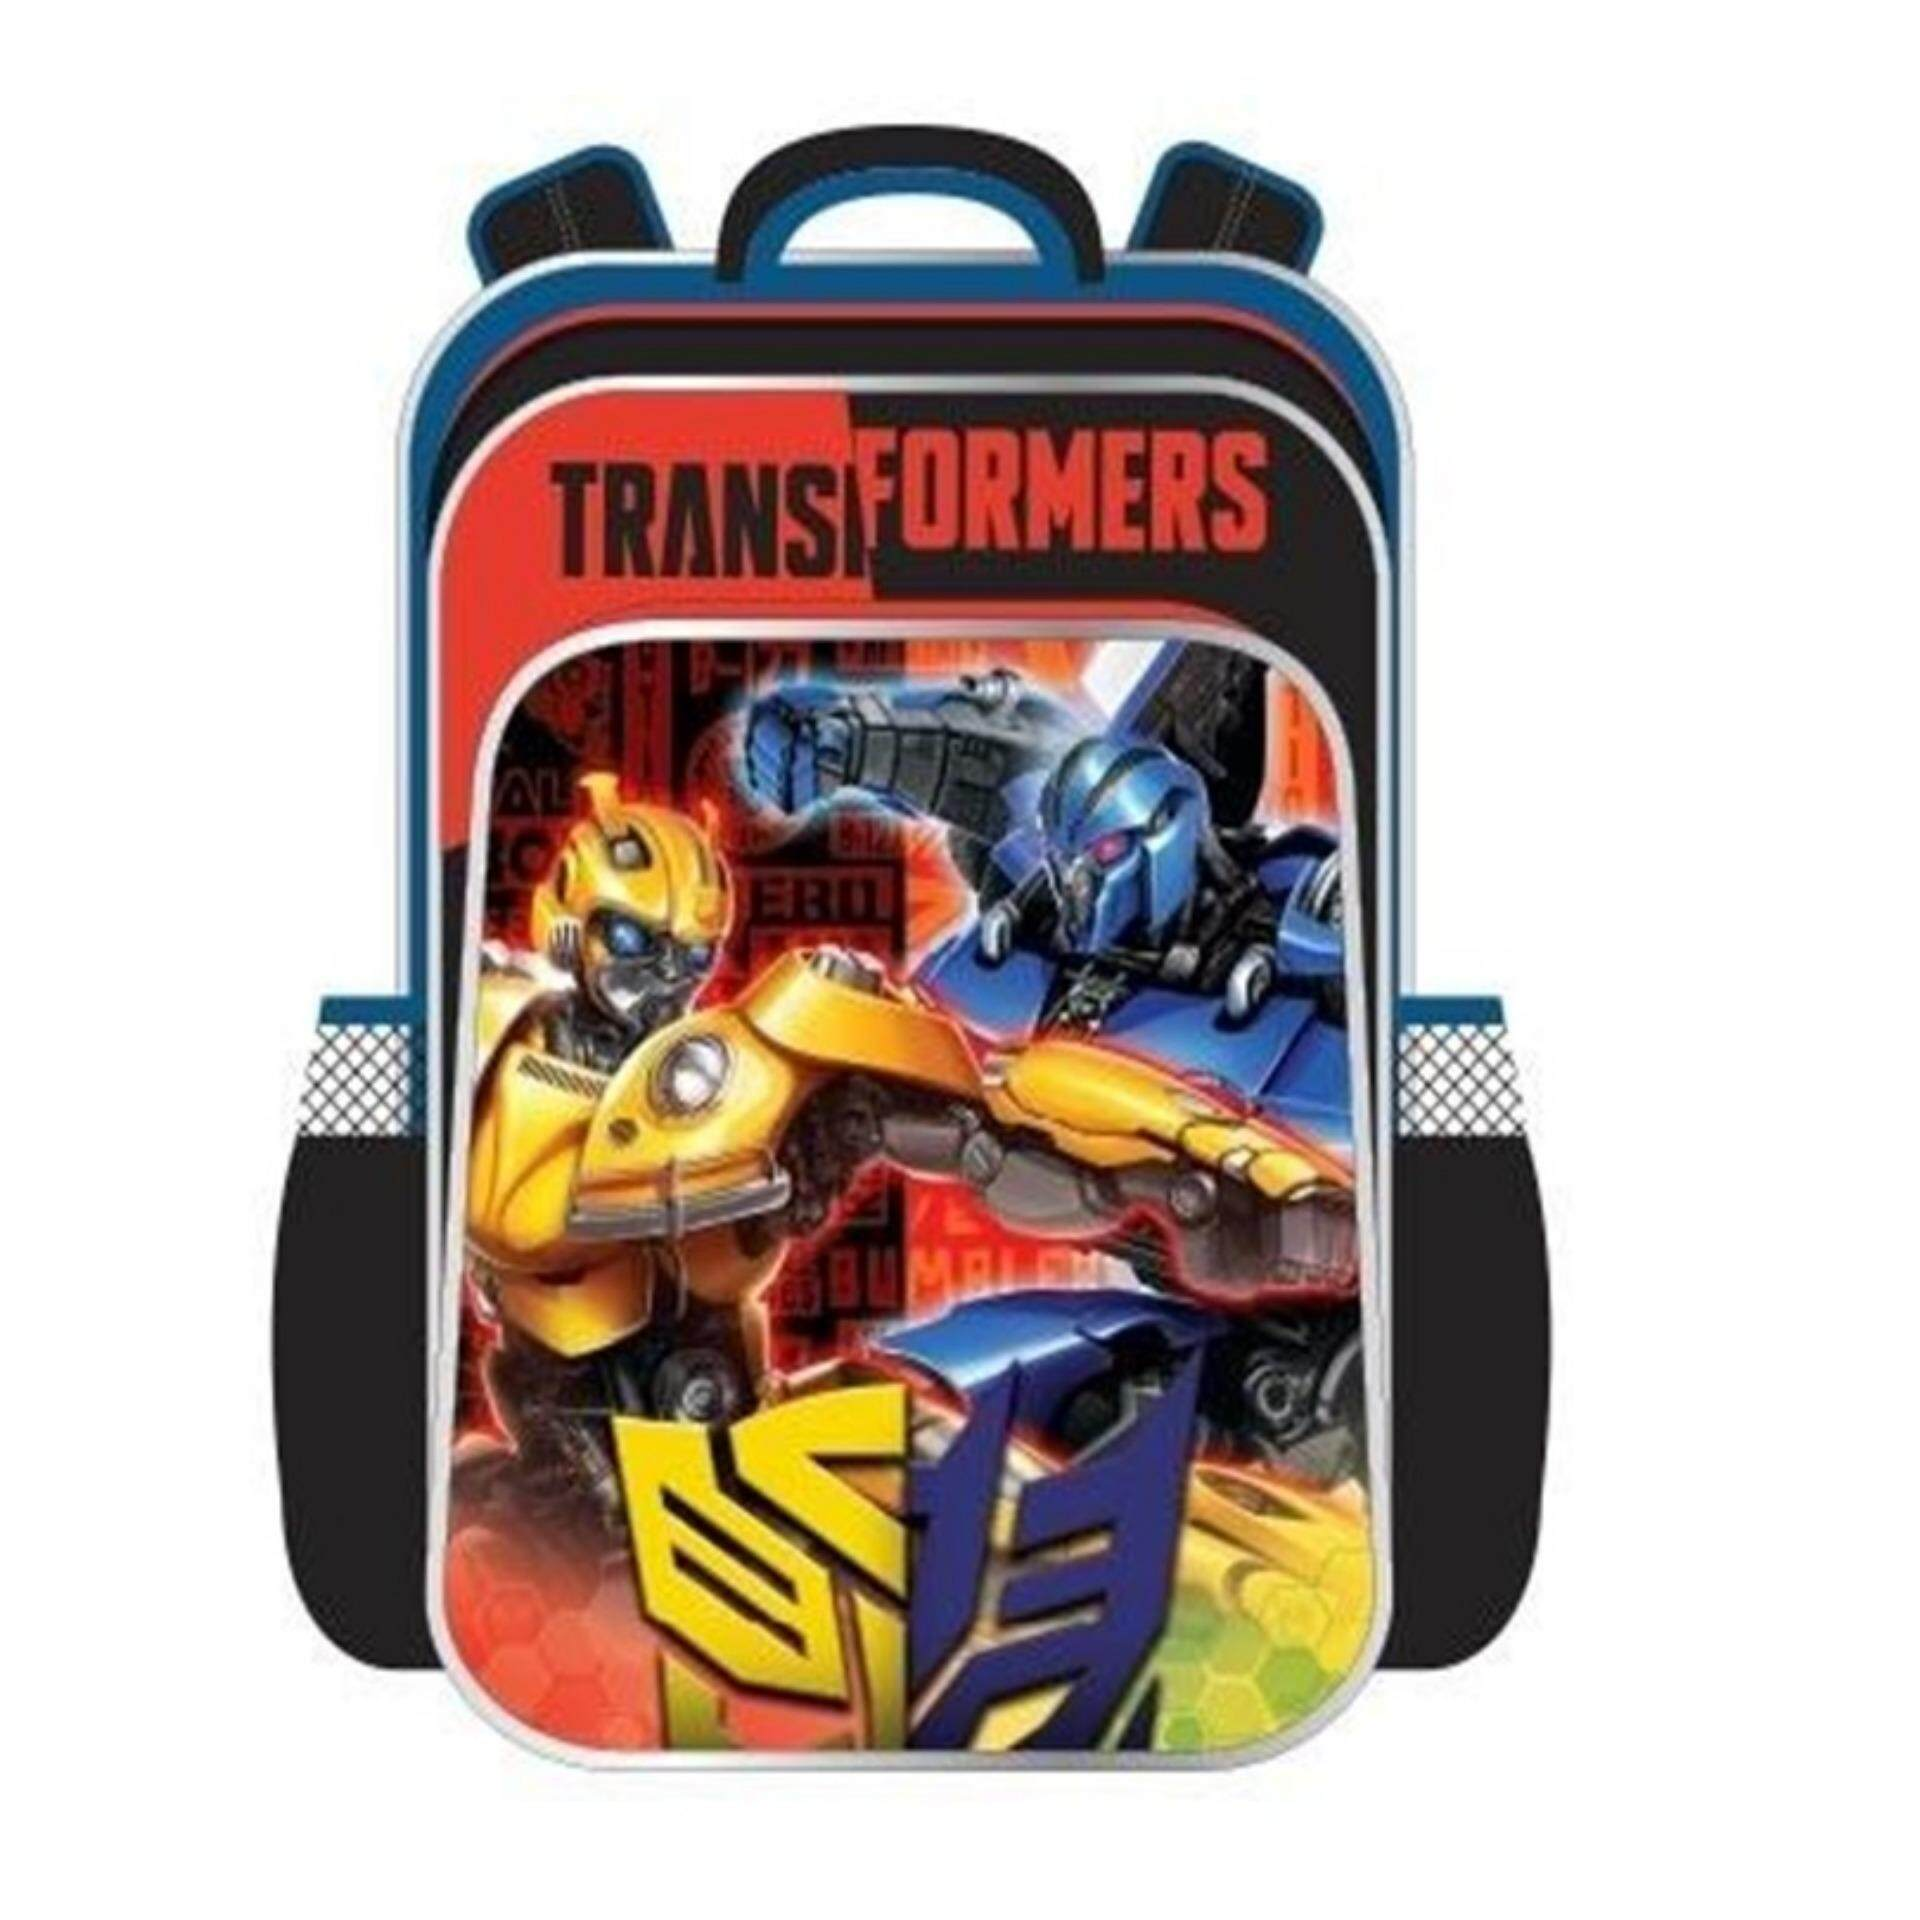 Transformers Bumblebee Primary School Bag Backpack - Red Colour